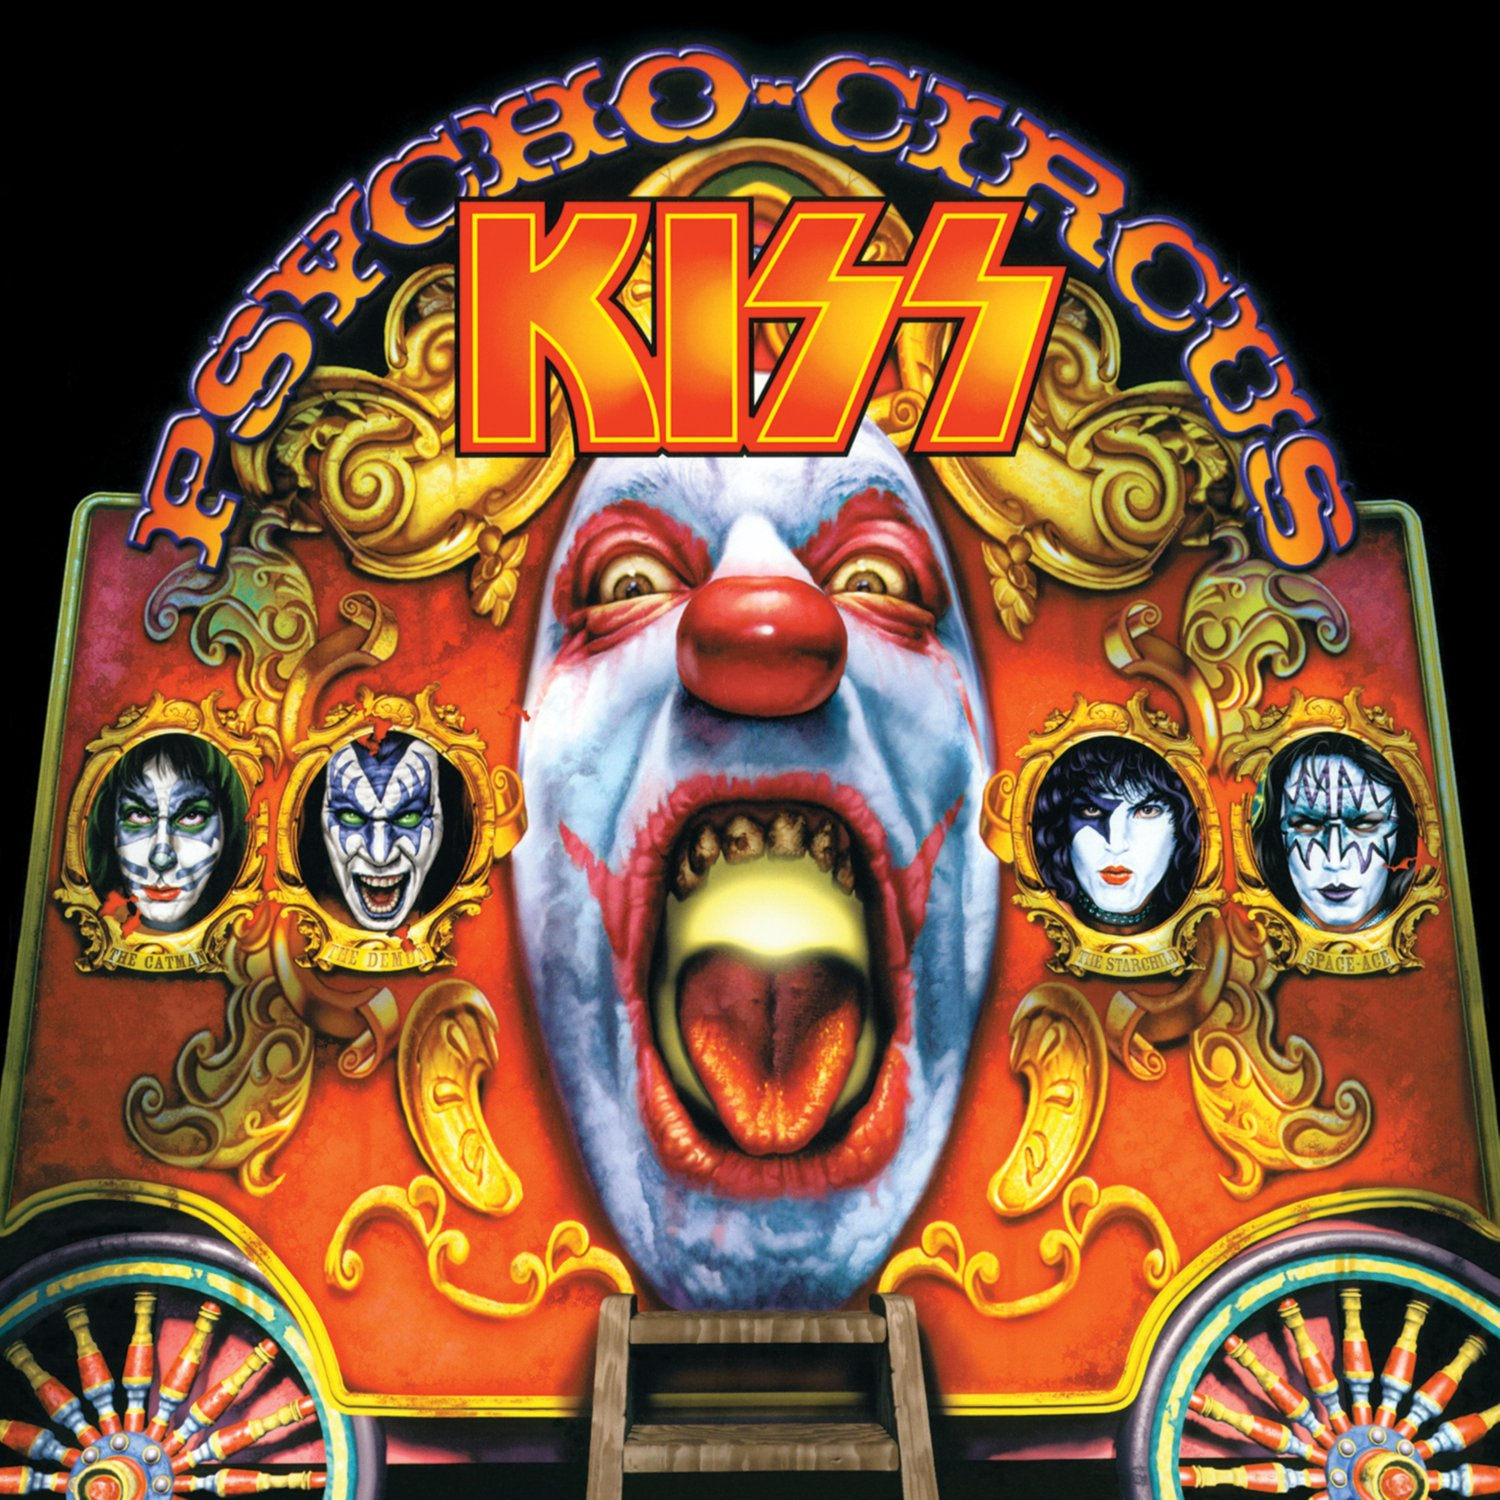 KISS Psycho Circus BANNER Huge 4X4 Ft Fabric Poster Tapestry Flag Print album cover art